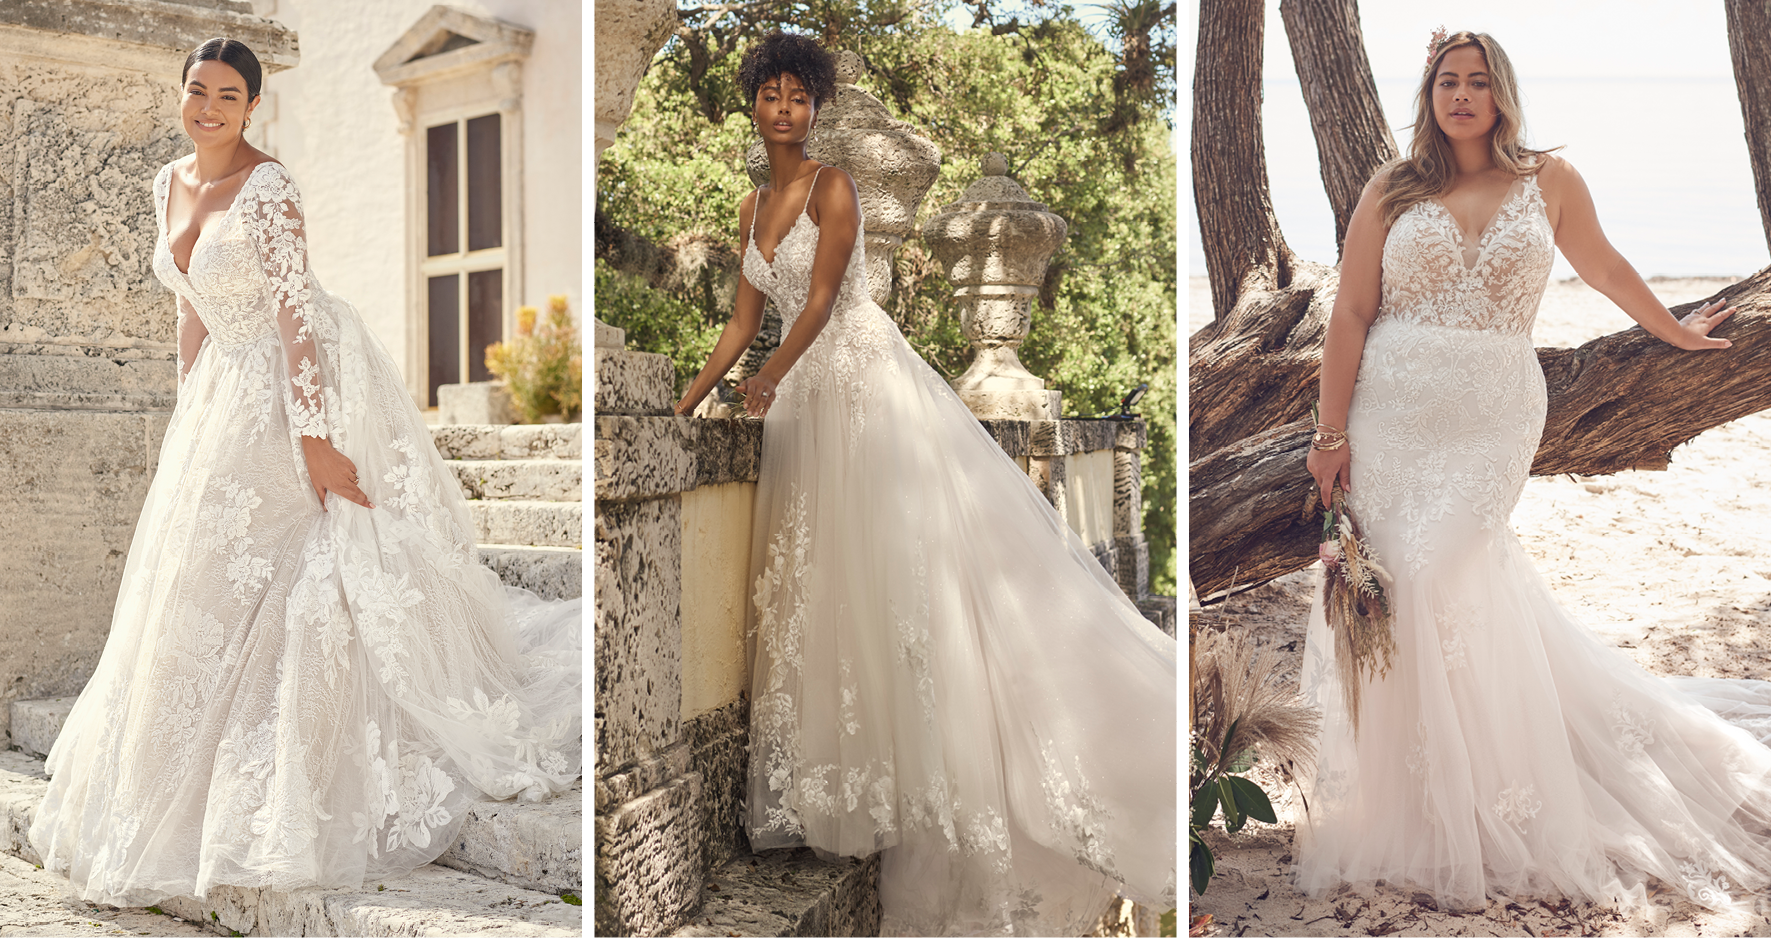 Collage of Brides Wearing the Most Popular Wedding Dresses from Maggie Sottero's Fall 2021 Collections